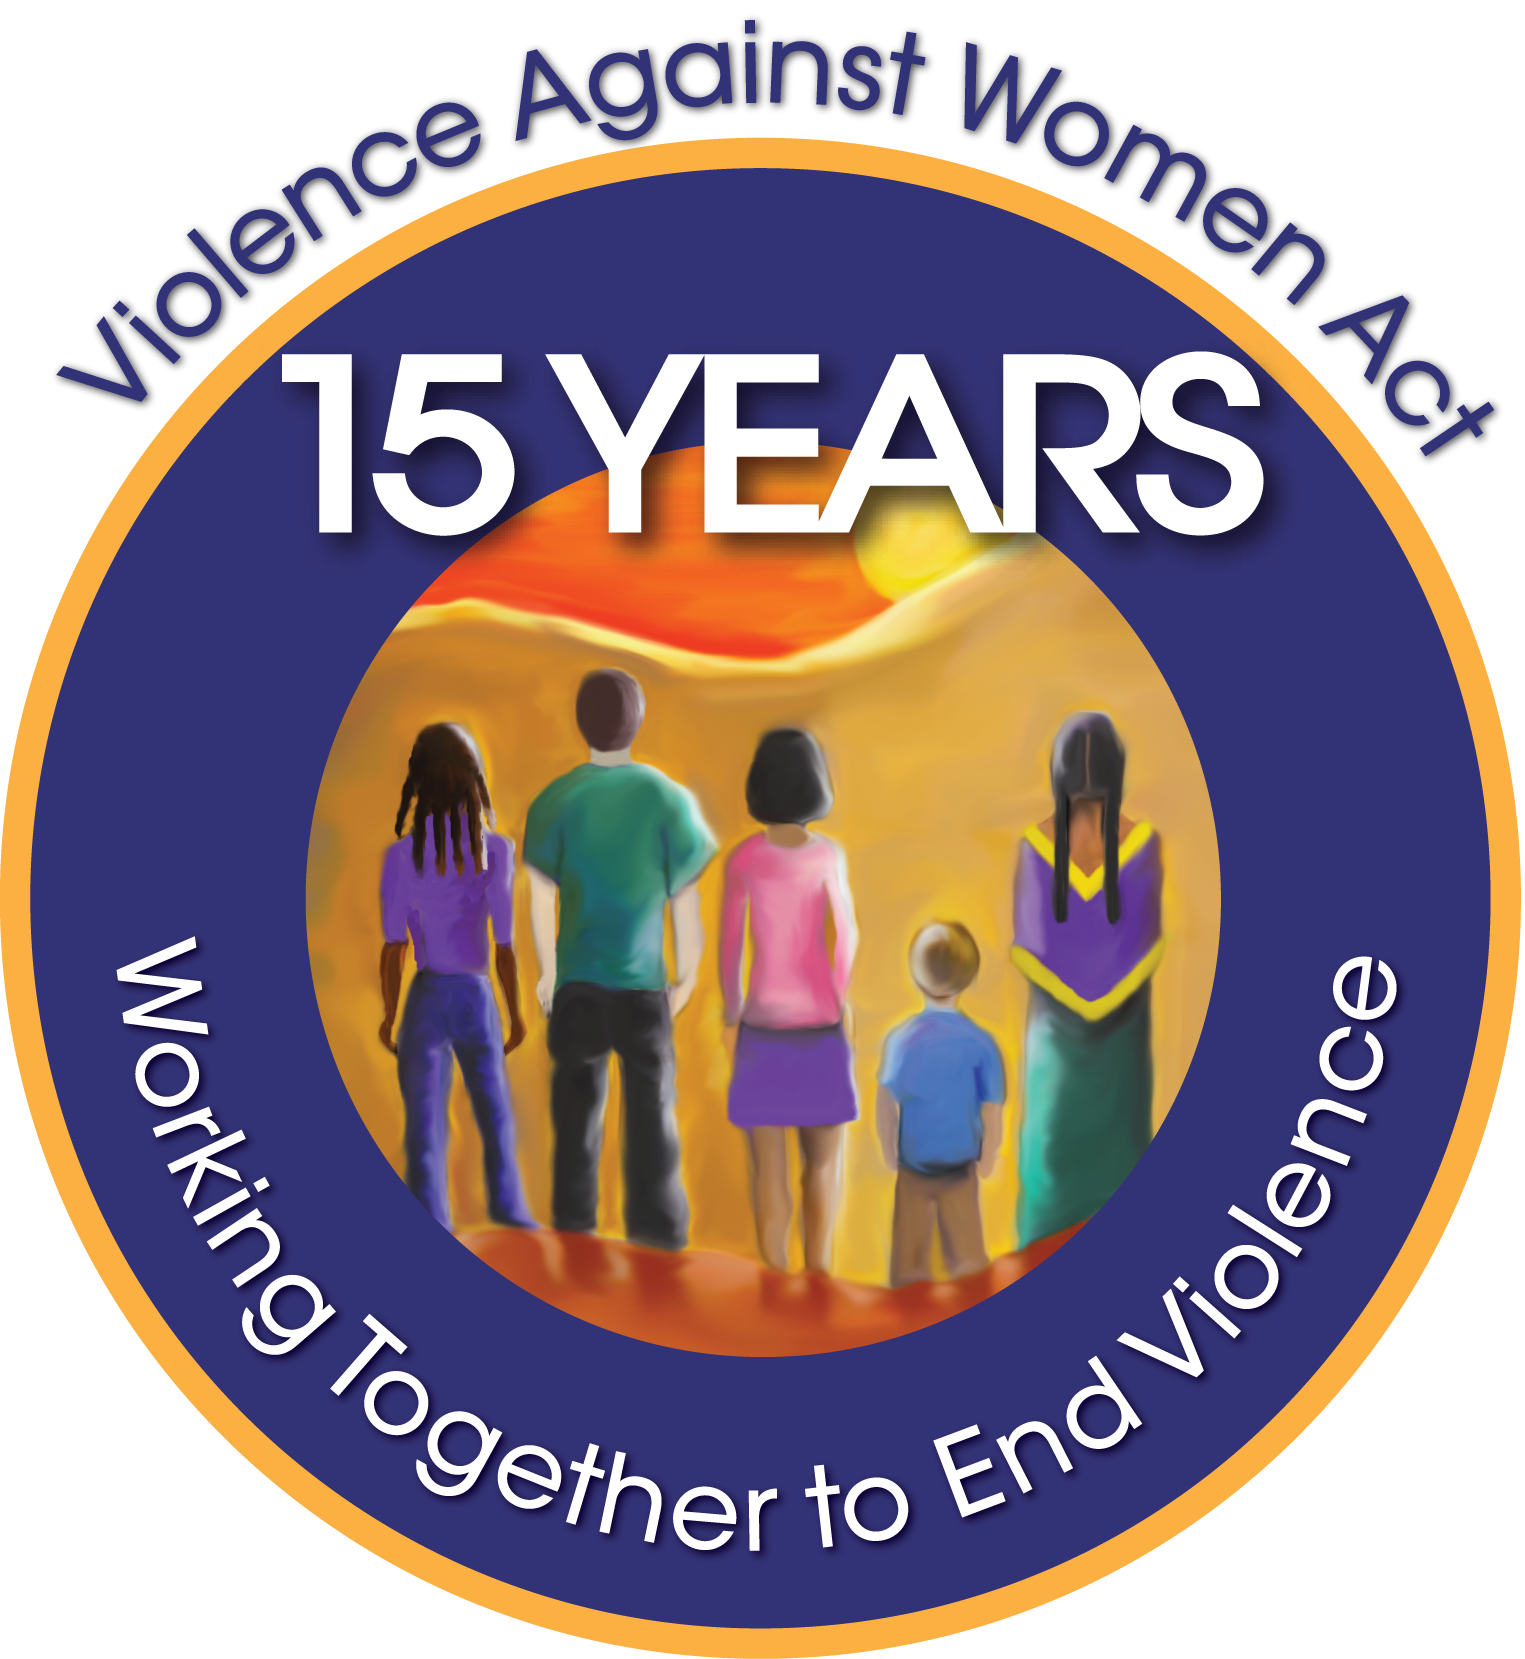 violence against women act vawa a winding path sexual assault  violence against women act 15 years working together to end violence